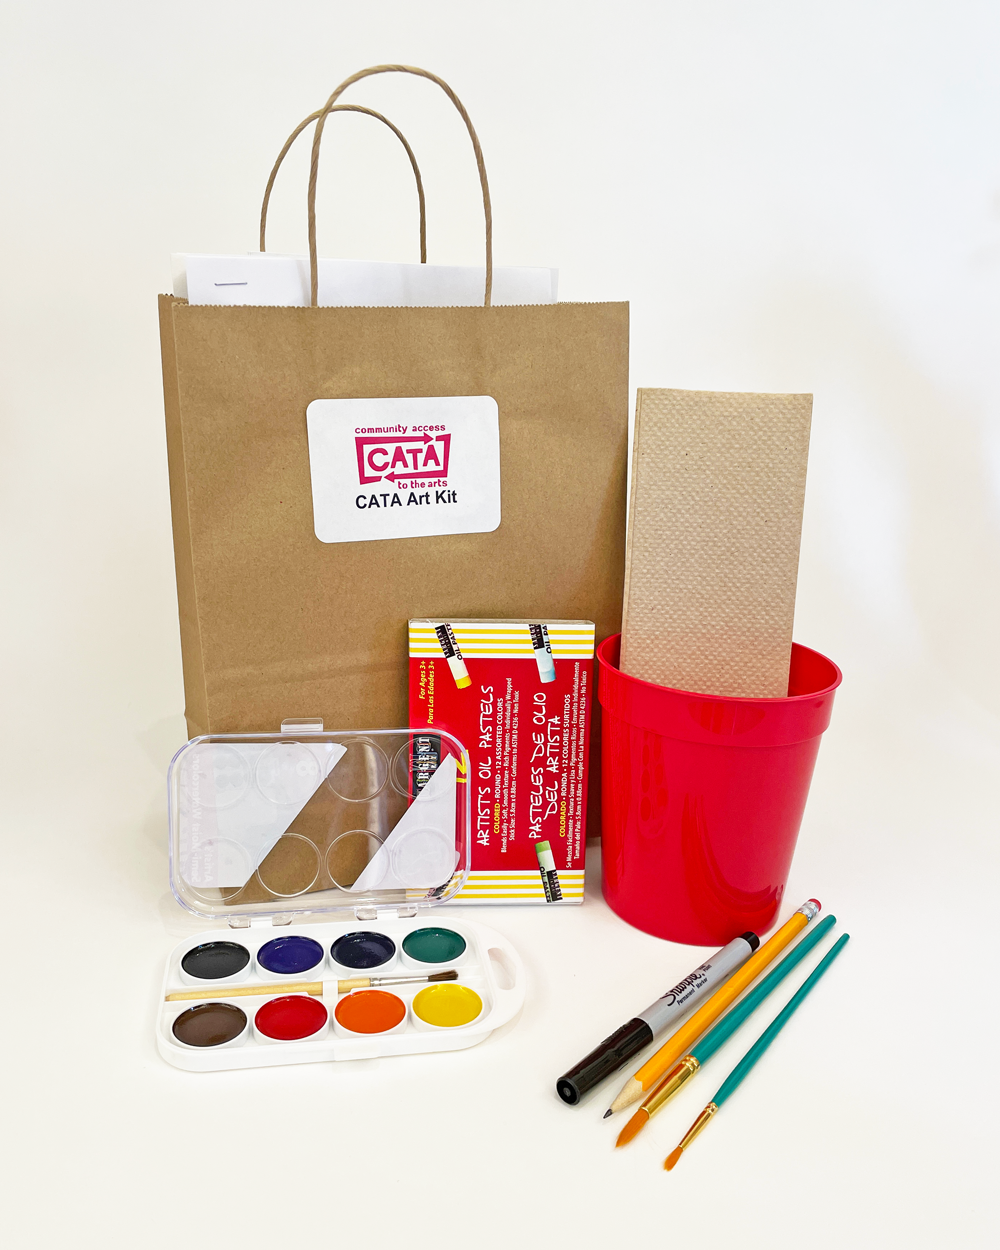 An example of a CATA art kit: a brown bag with a set of watercolor paints, paint brushes, pasels, and a red water cup.